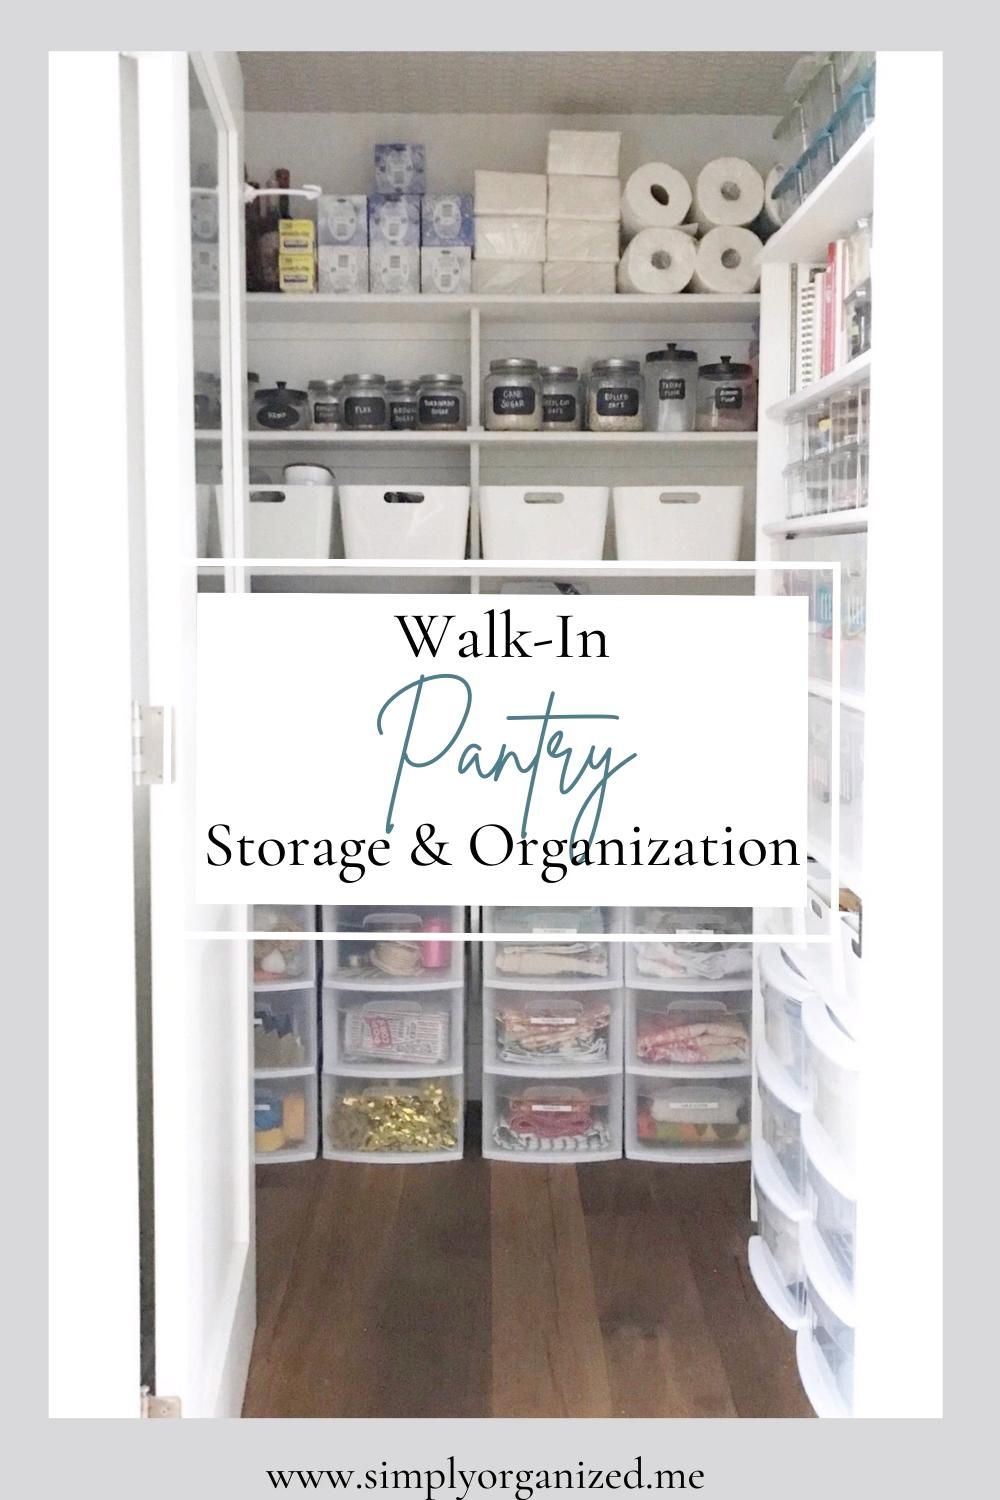 Photo of Pantry organization ideas. Walk in pantry storage and organization.